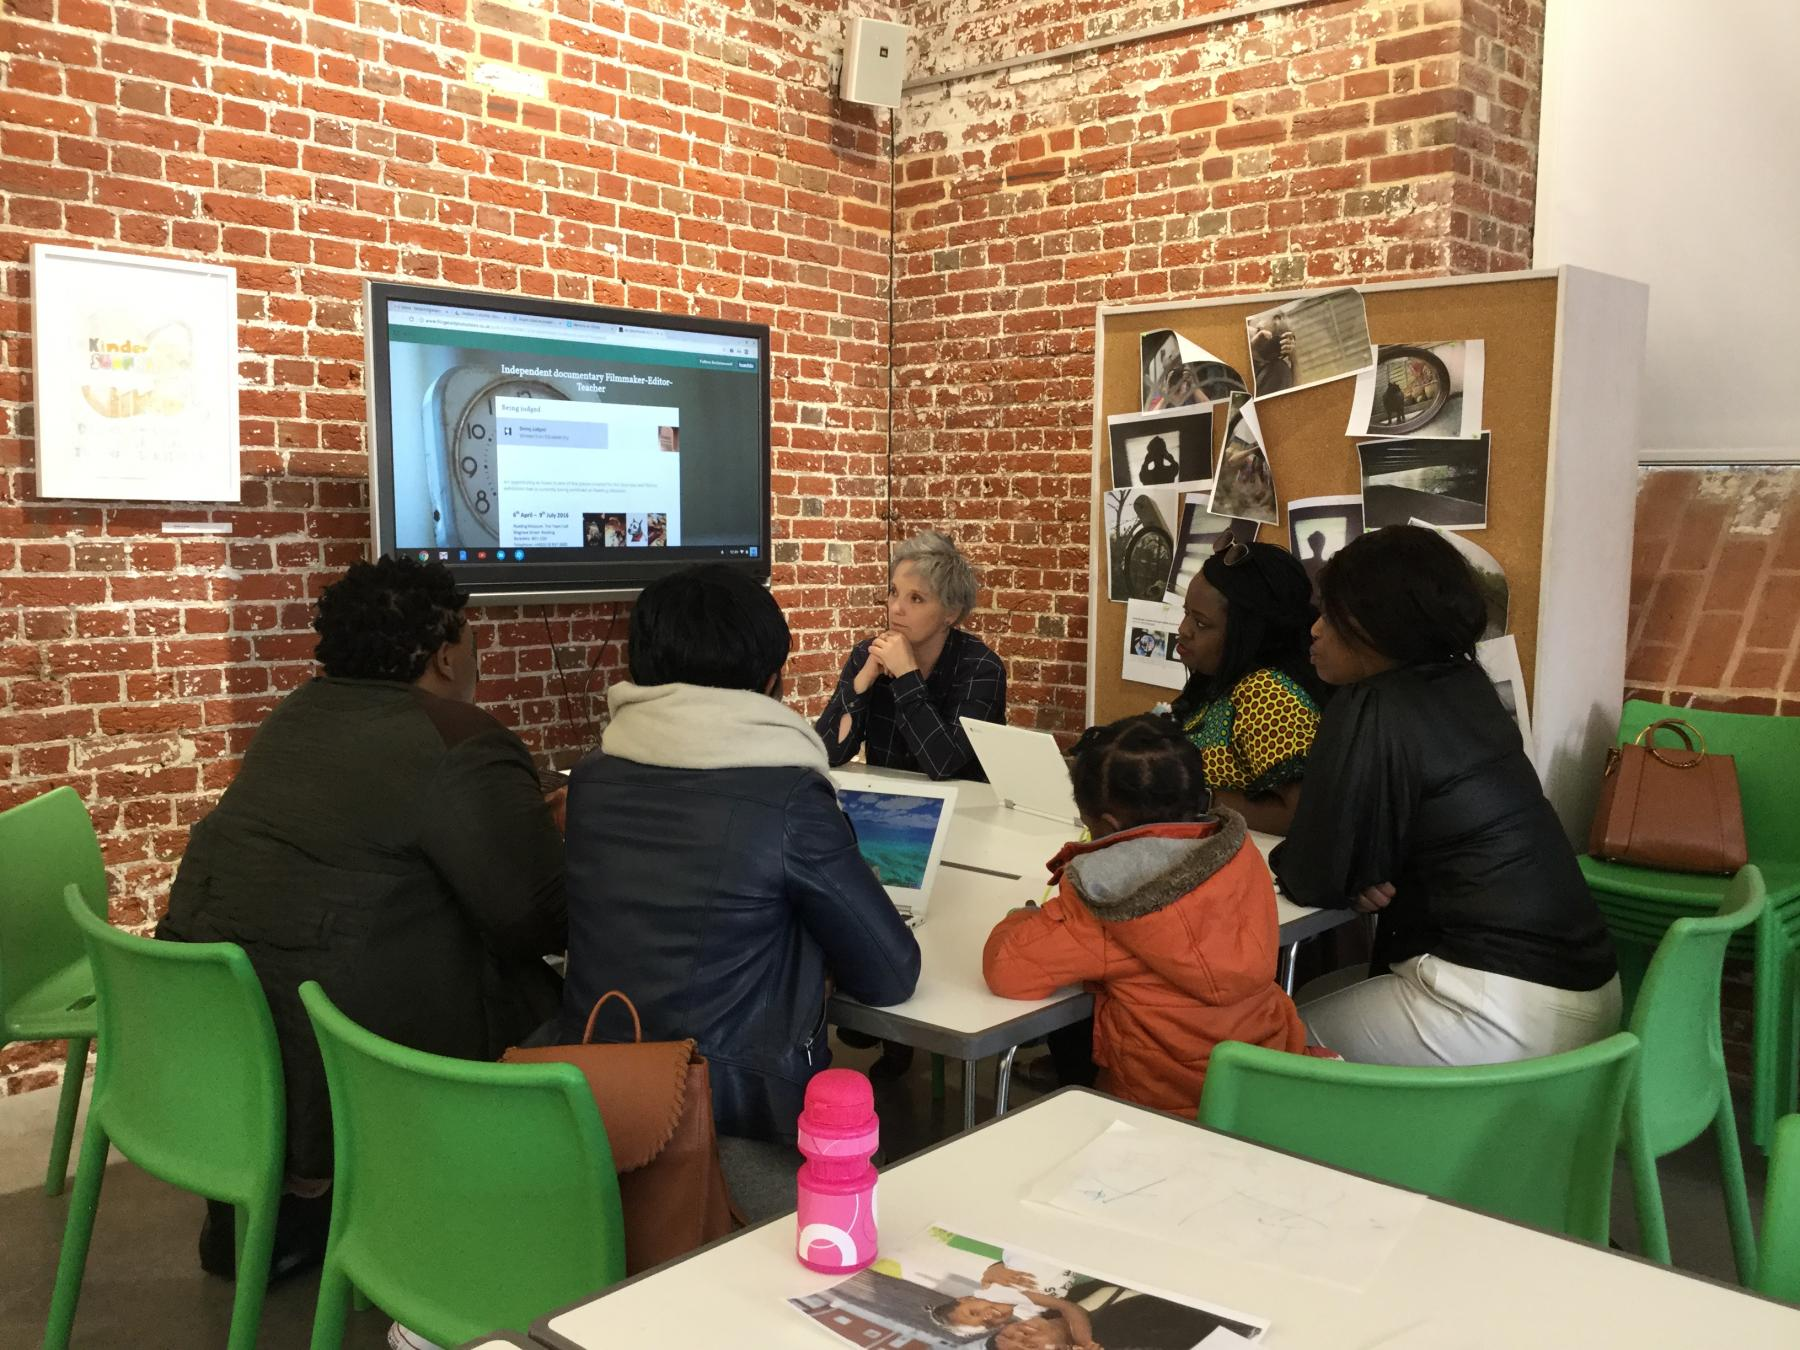 Aspex Participation and Learning Film workshop with Freelance Filmmaker Linda Mason